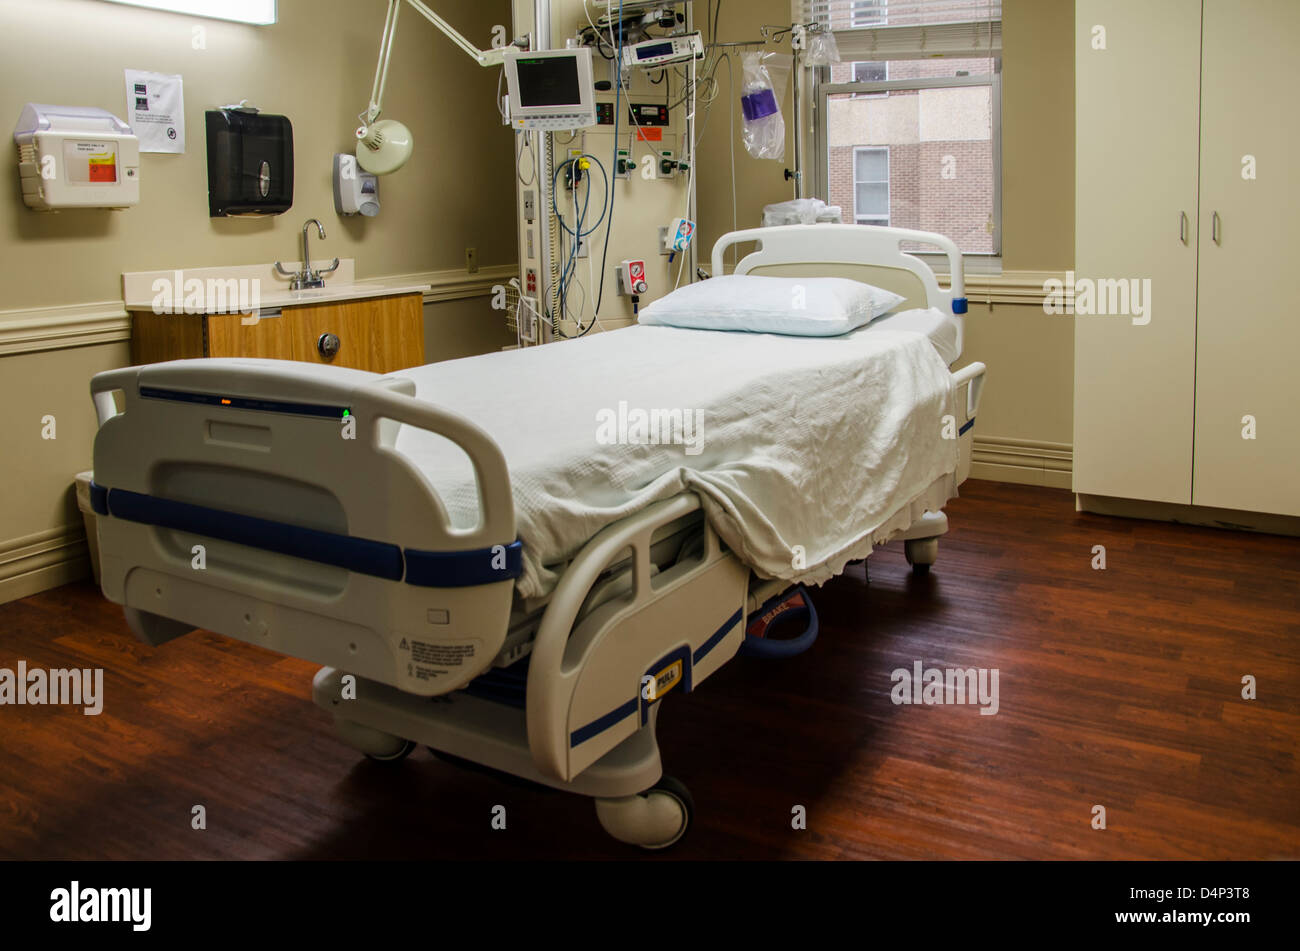 Hospital ICU (Intensive Care Unit) room is ready to accept a patient - Stock Image